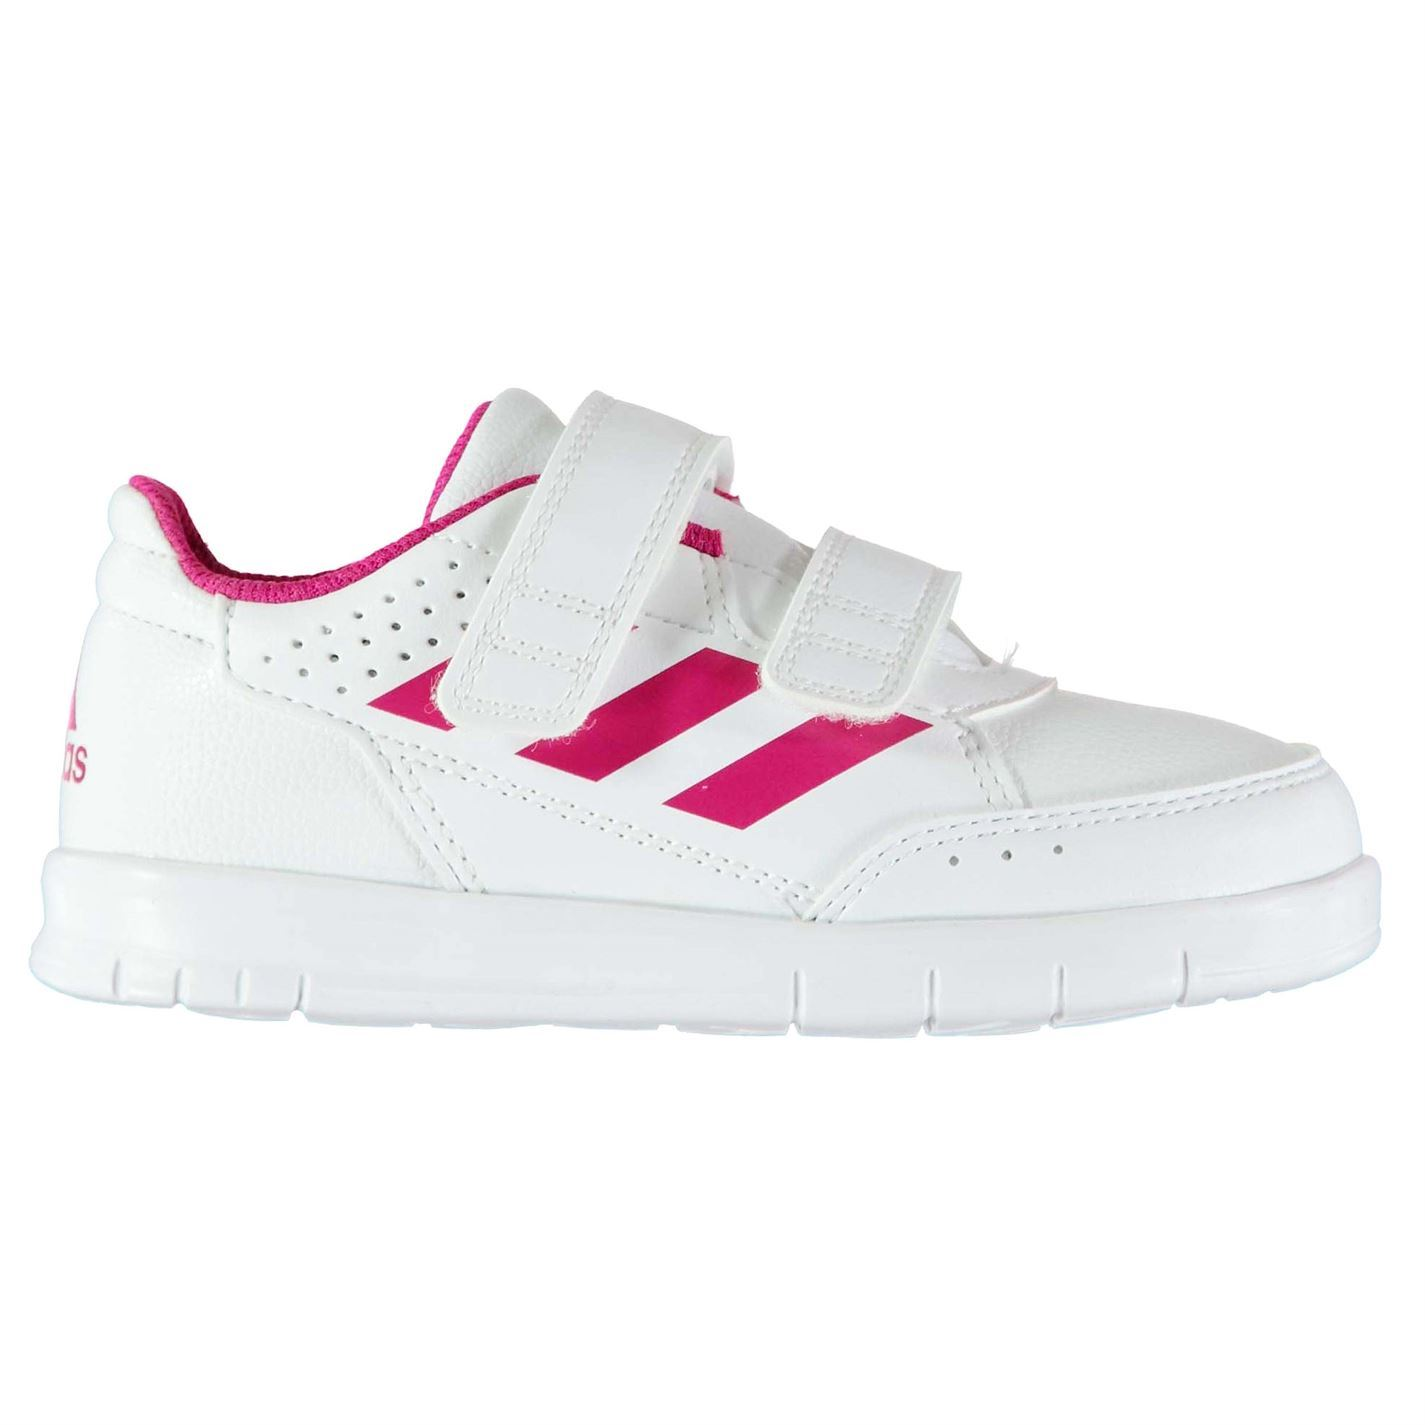 Details about adidas Alta Sport Infant Girls Trainers Shoes Footwear